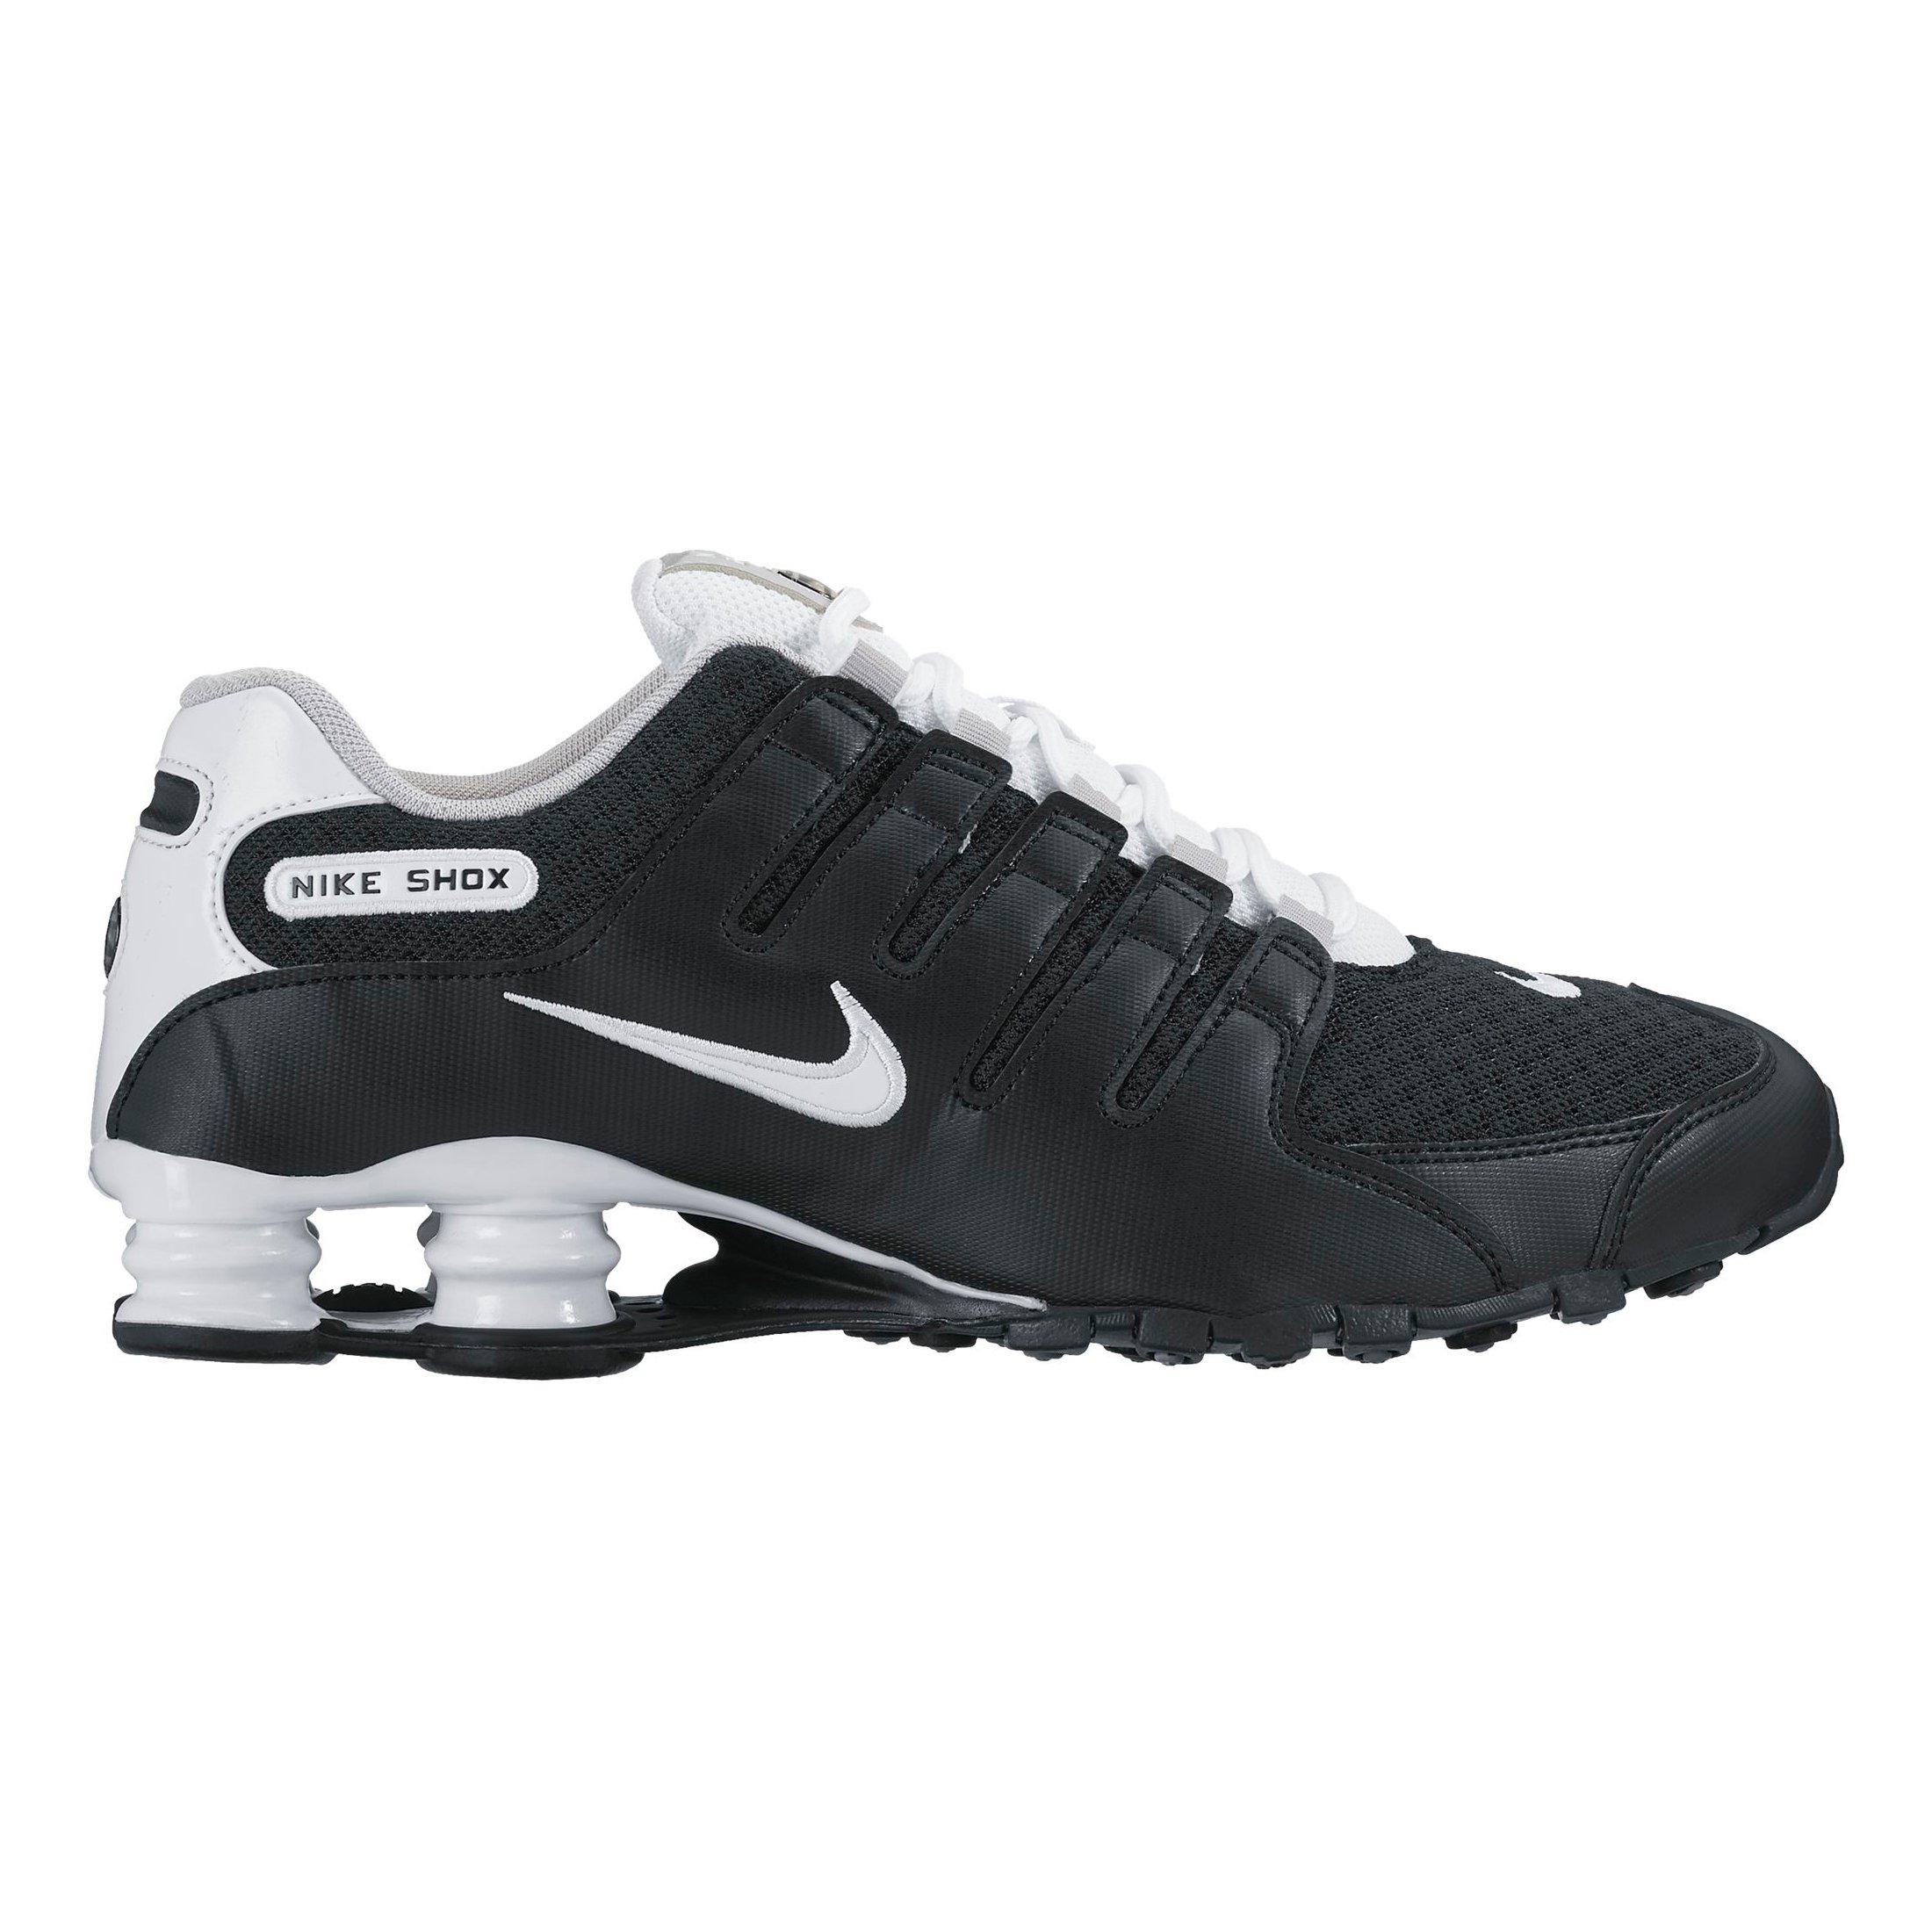 0119237324e 20+ Hibbett Sports Shoes For Men Pictures and Ideas on Meta Networks